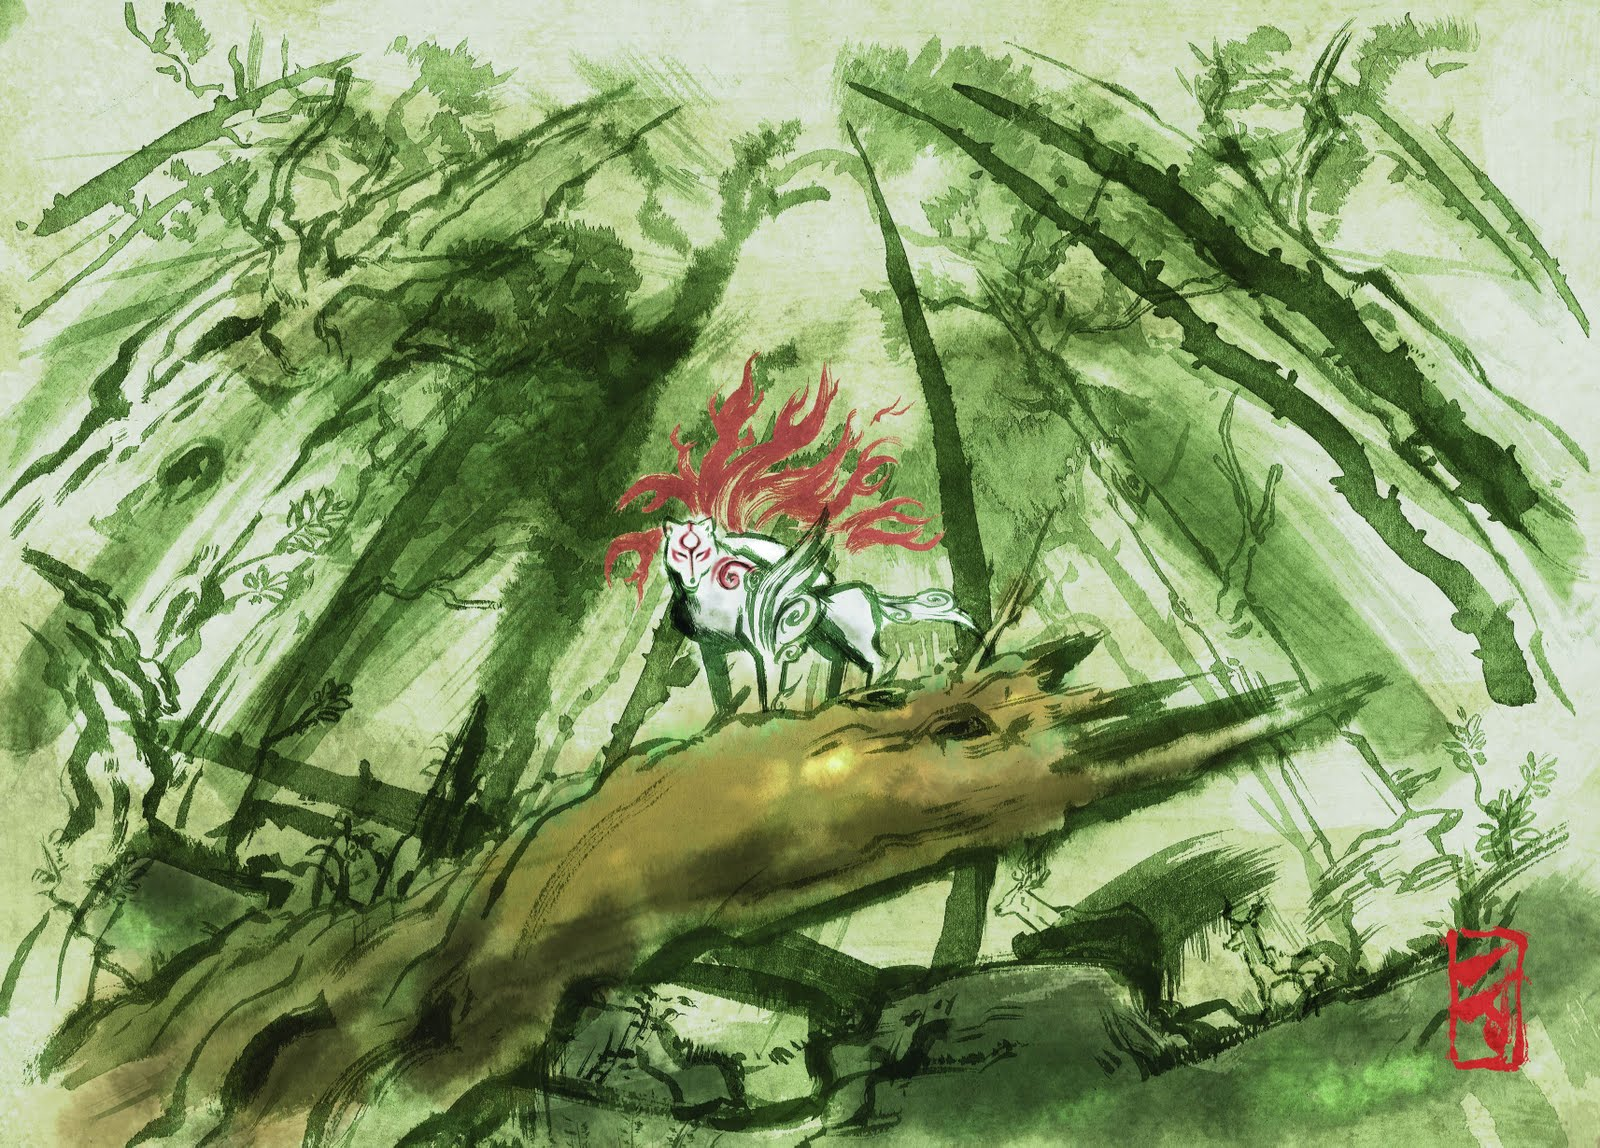 Okami HD & Widescreen Wallpaper 0.170548235891038